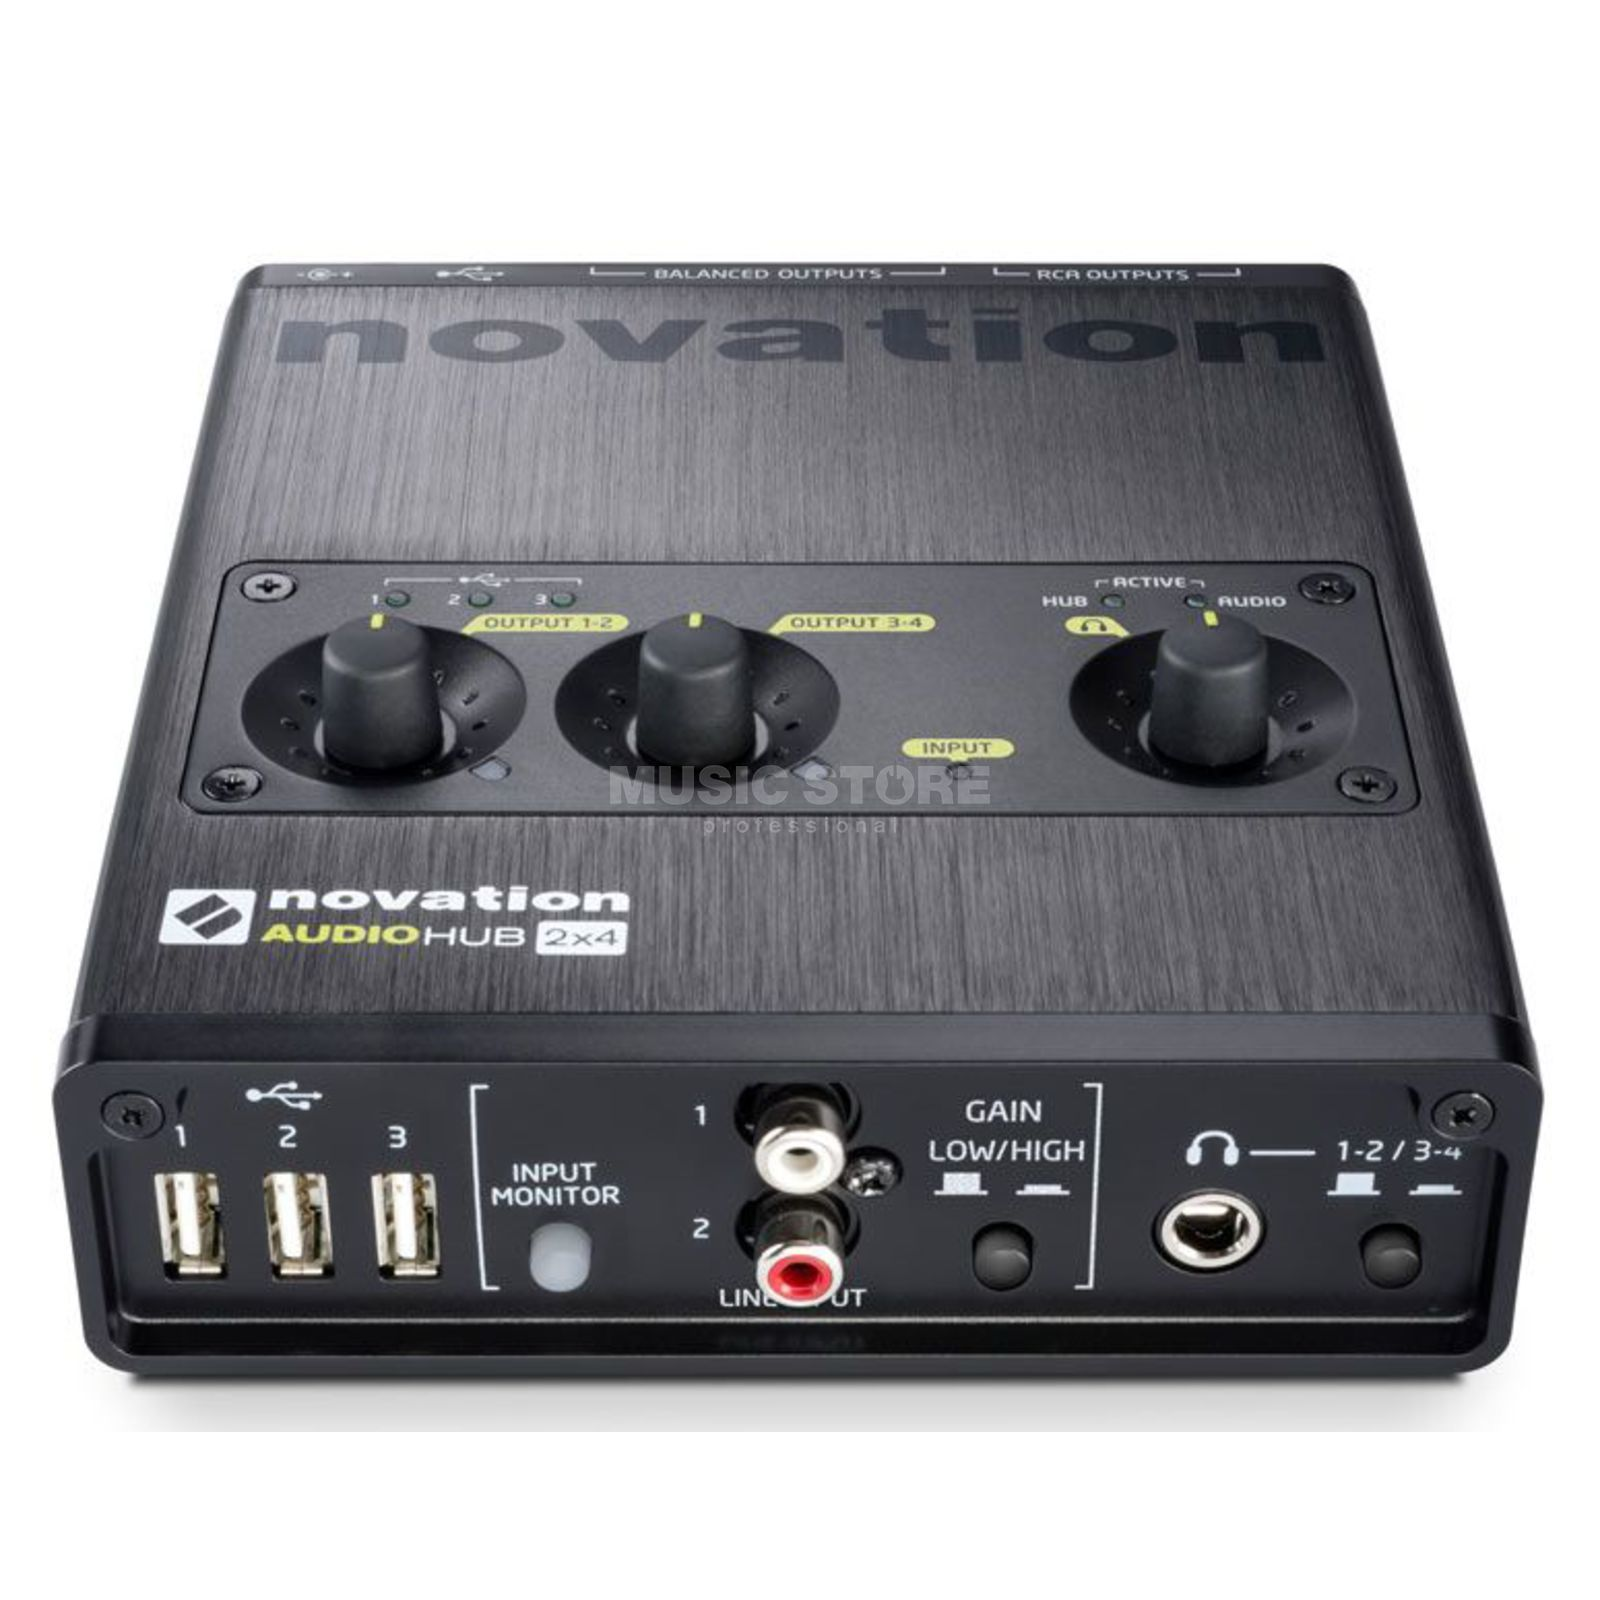 Novation Audiohub 2x4 Audio-Interface und USB-Hub Produktbild